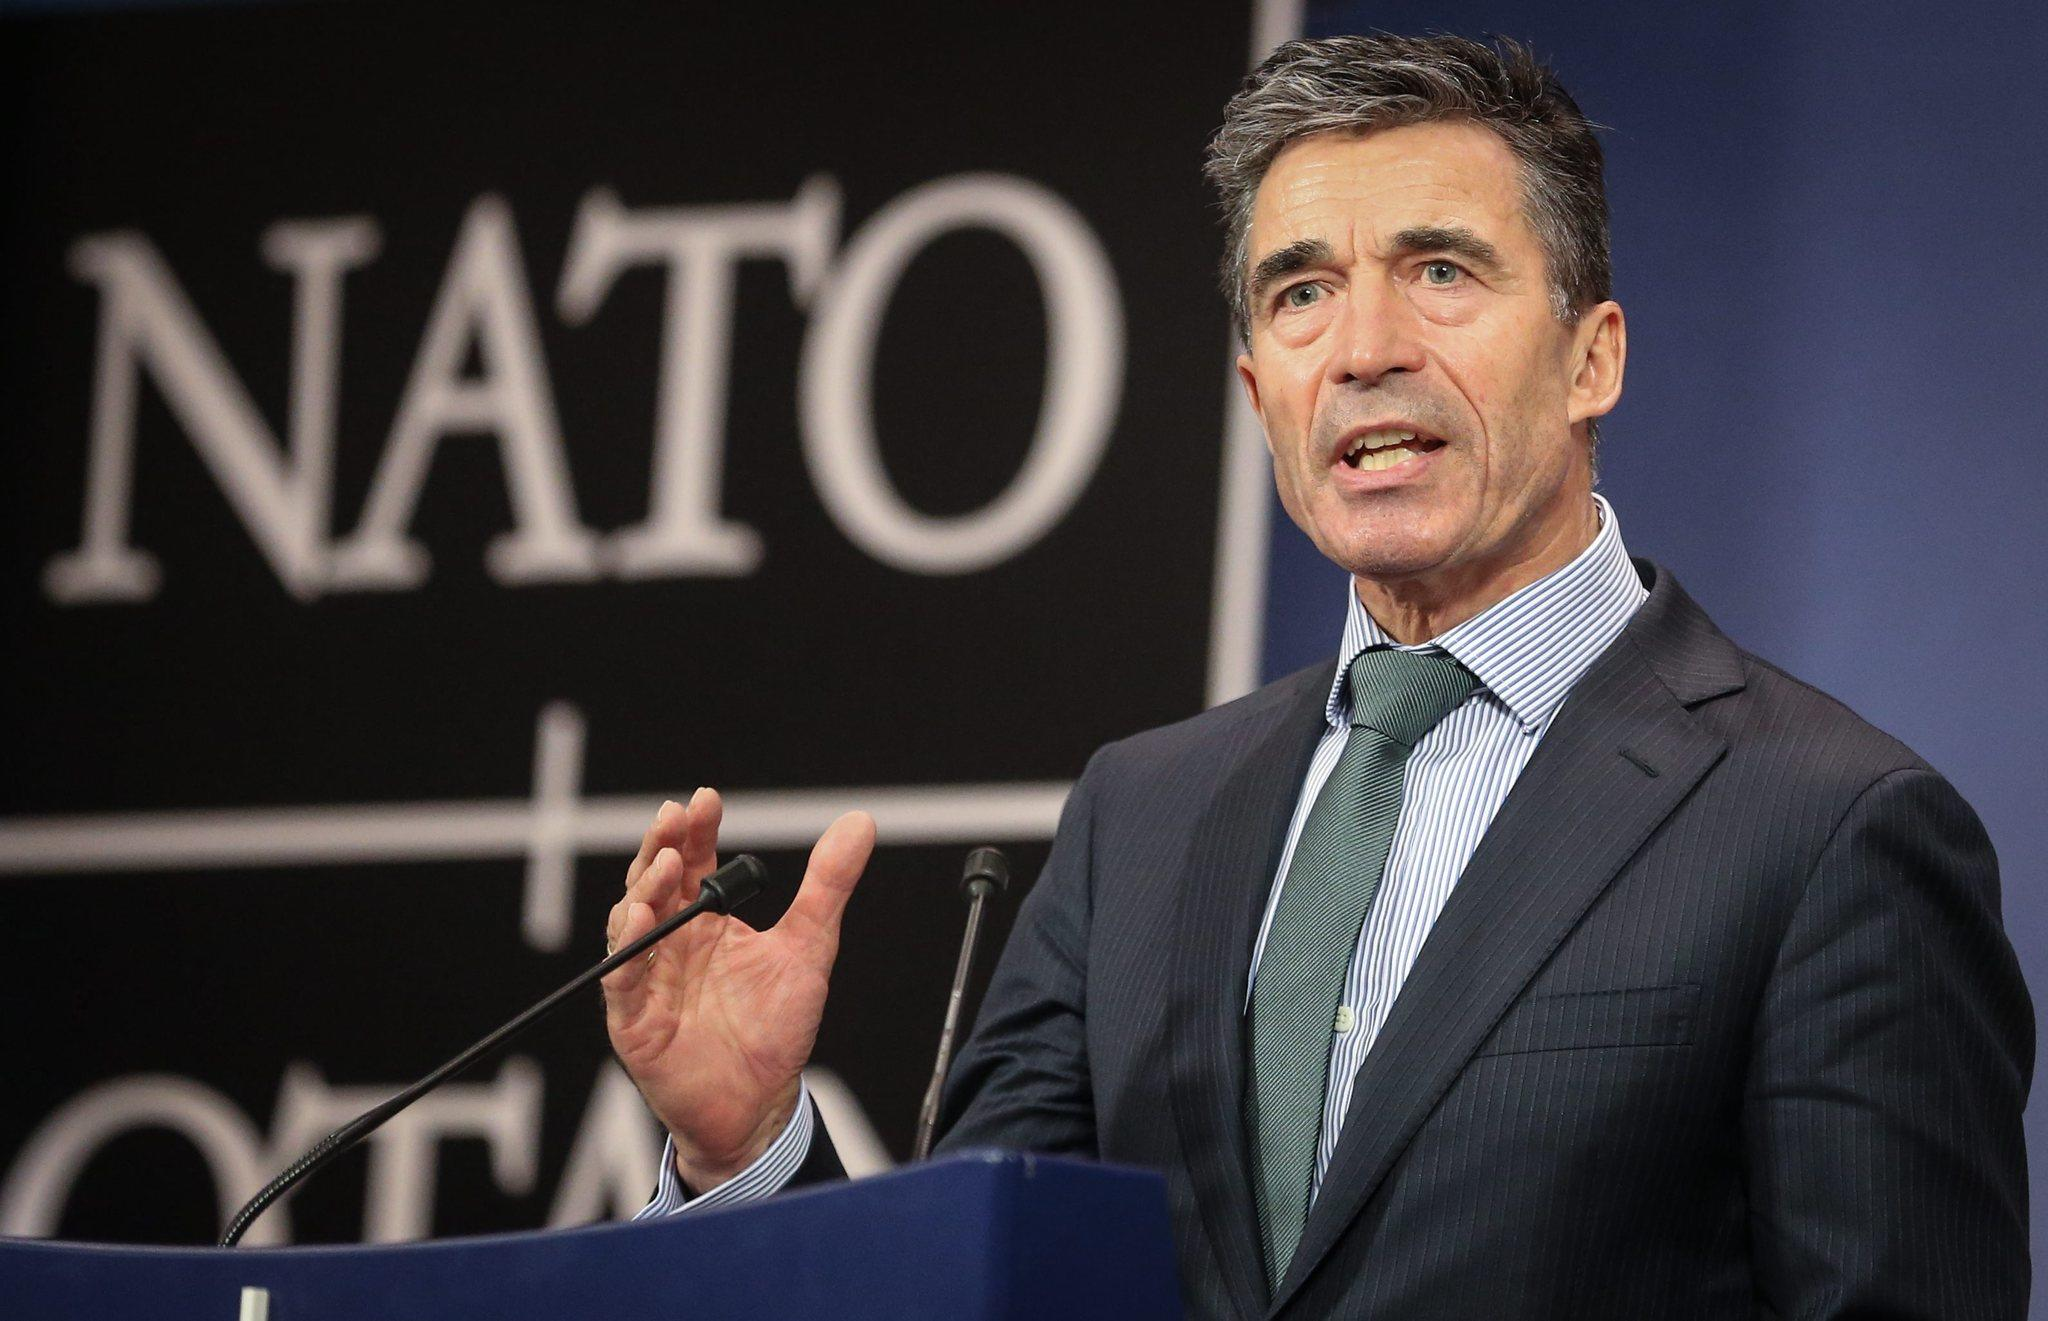 NATO Secretary-General Anders Fogh Rasmussen gives a media briefing at a meeting of the alliance's foreign ministers in Brussels.